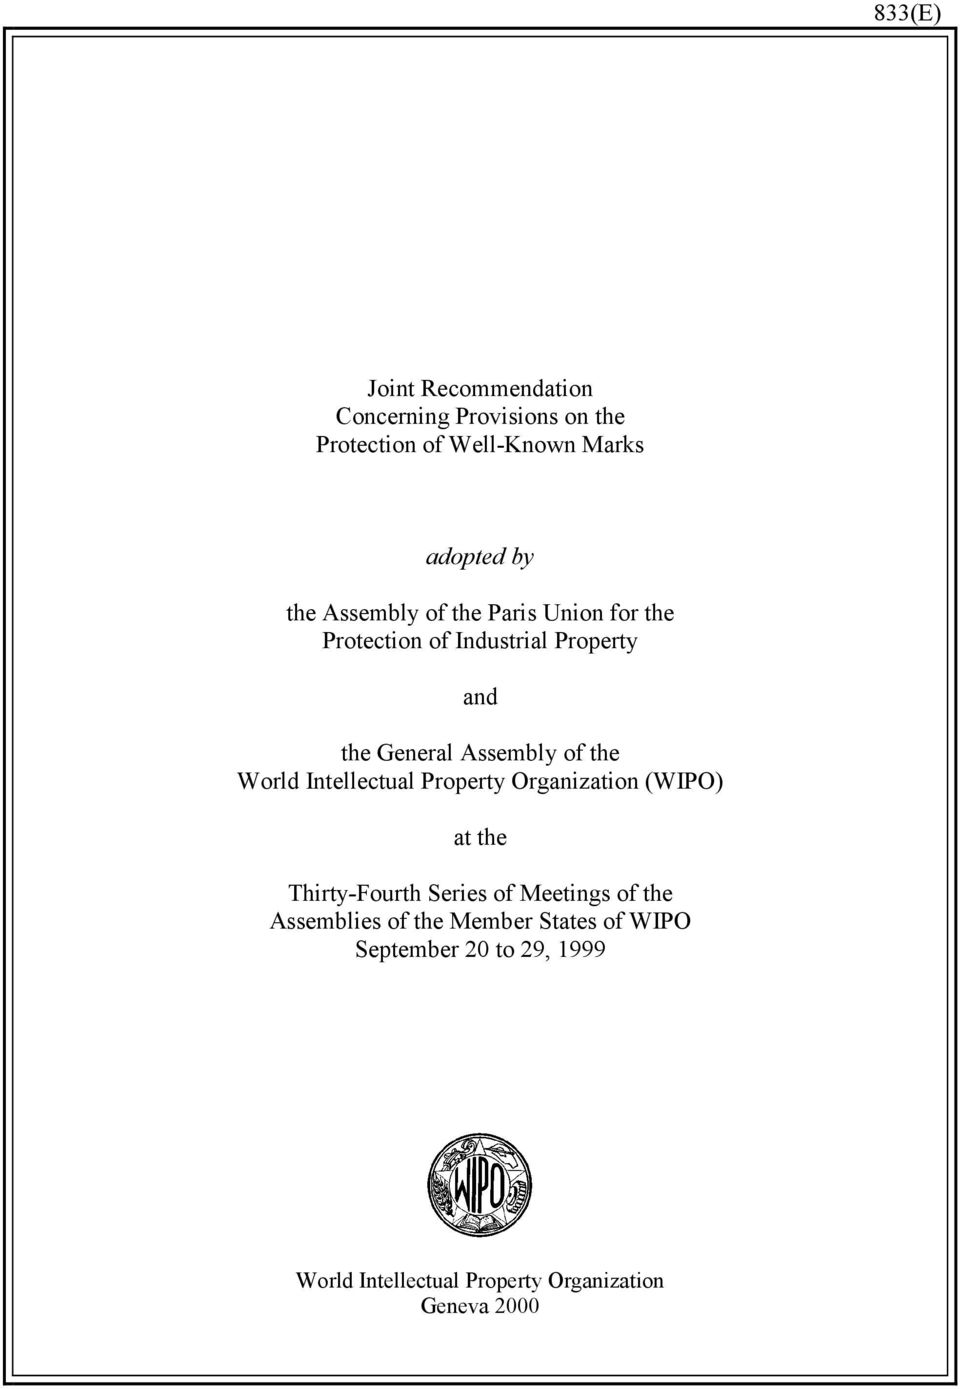 World Intellectual Property Organization (WIPO) at the Thirty-Fourth Series of Meetings of the